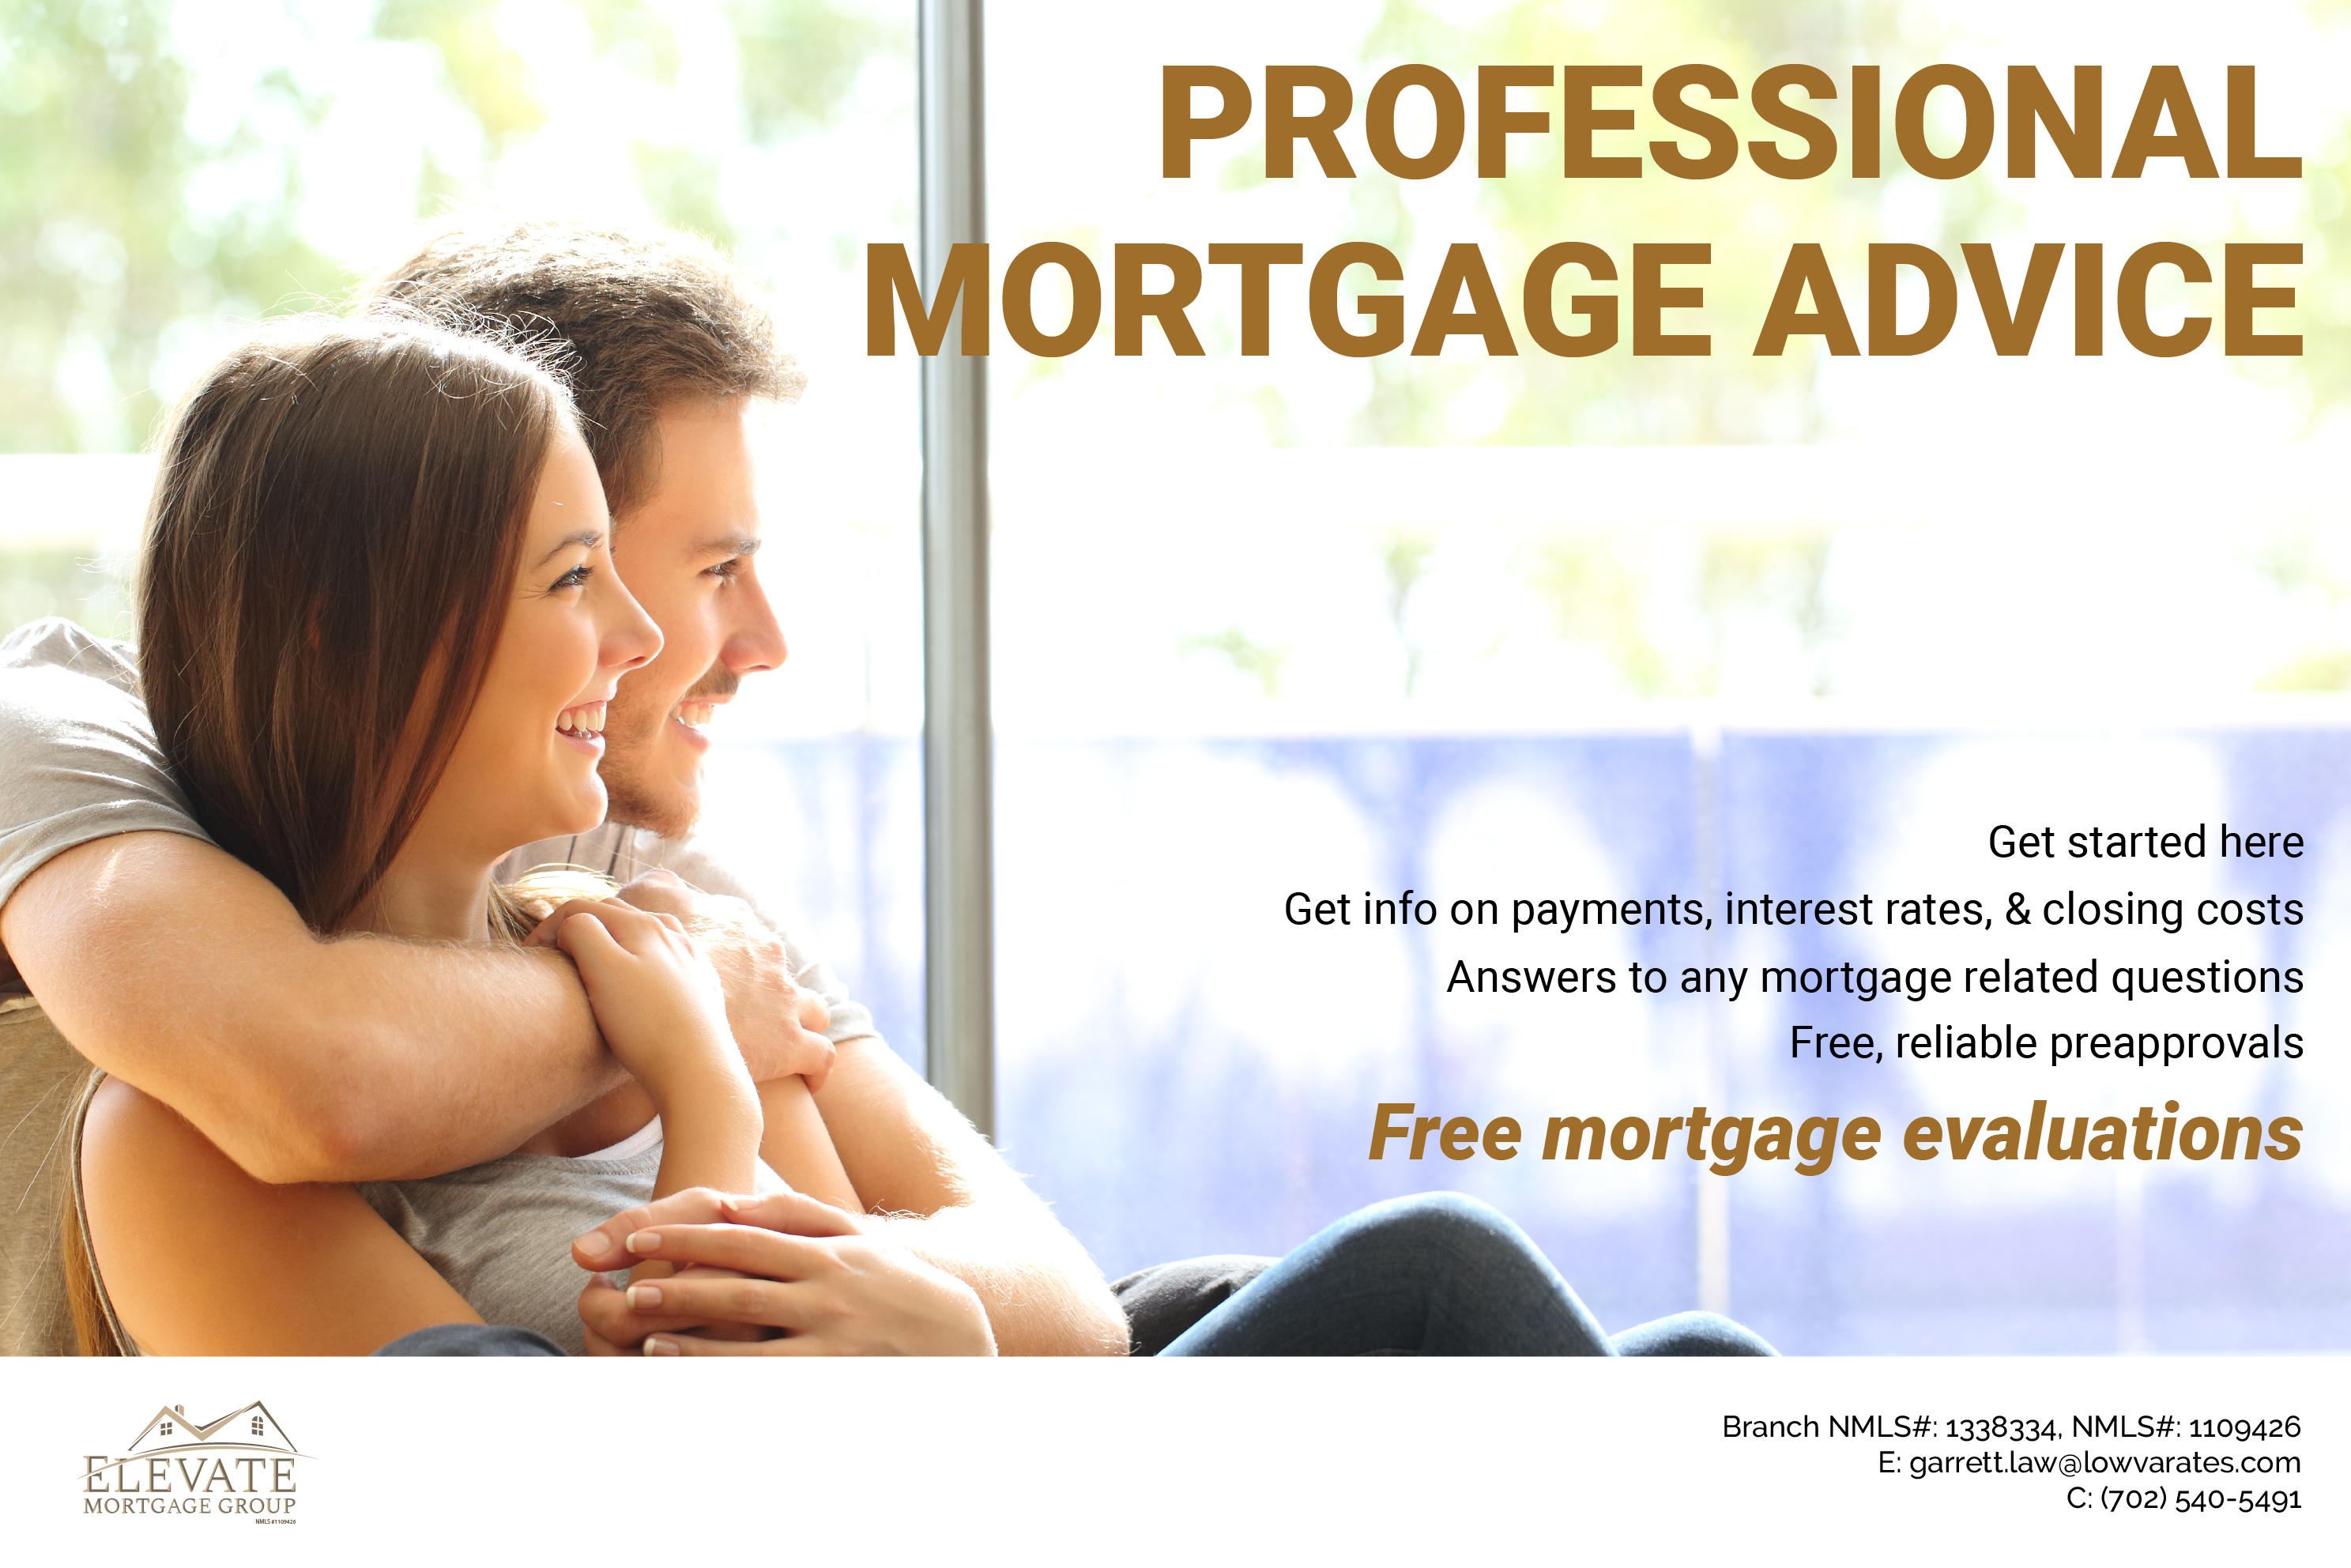 professional_mortgage_advice_marketing-01.png (4.19 MB)